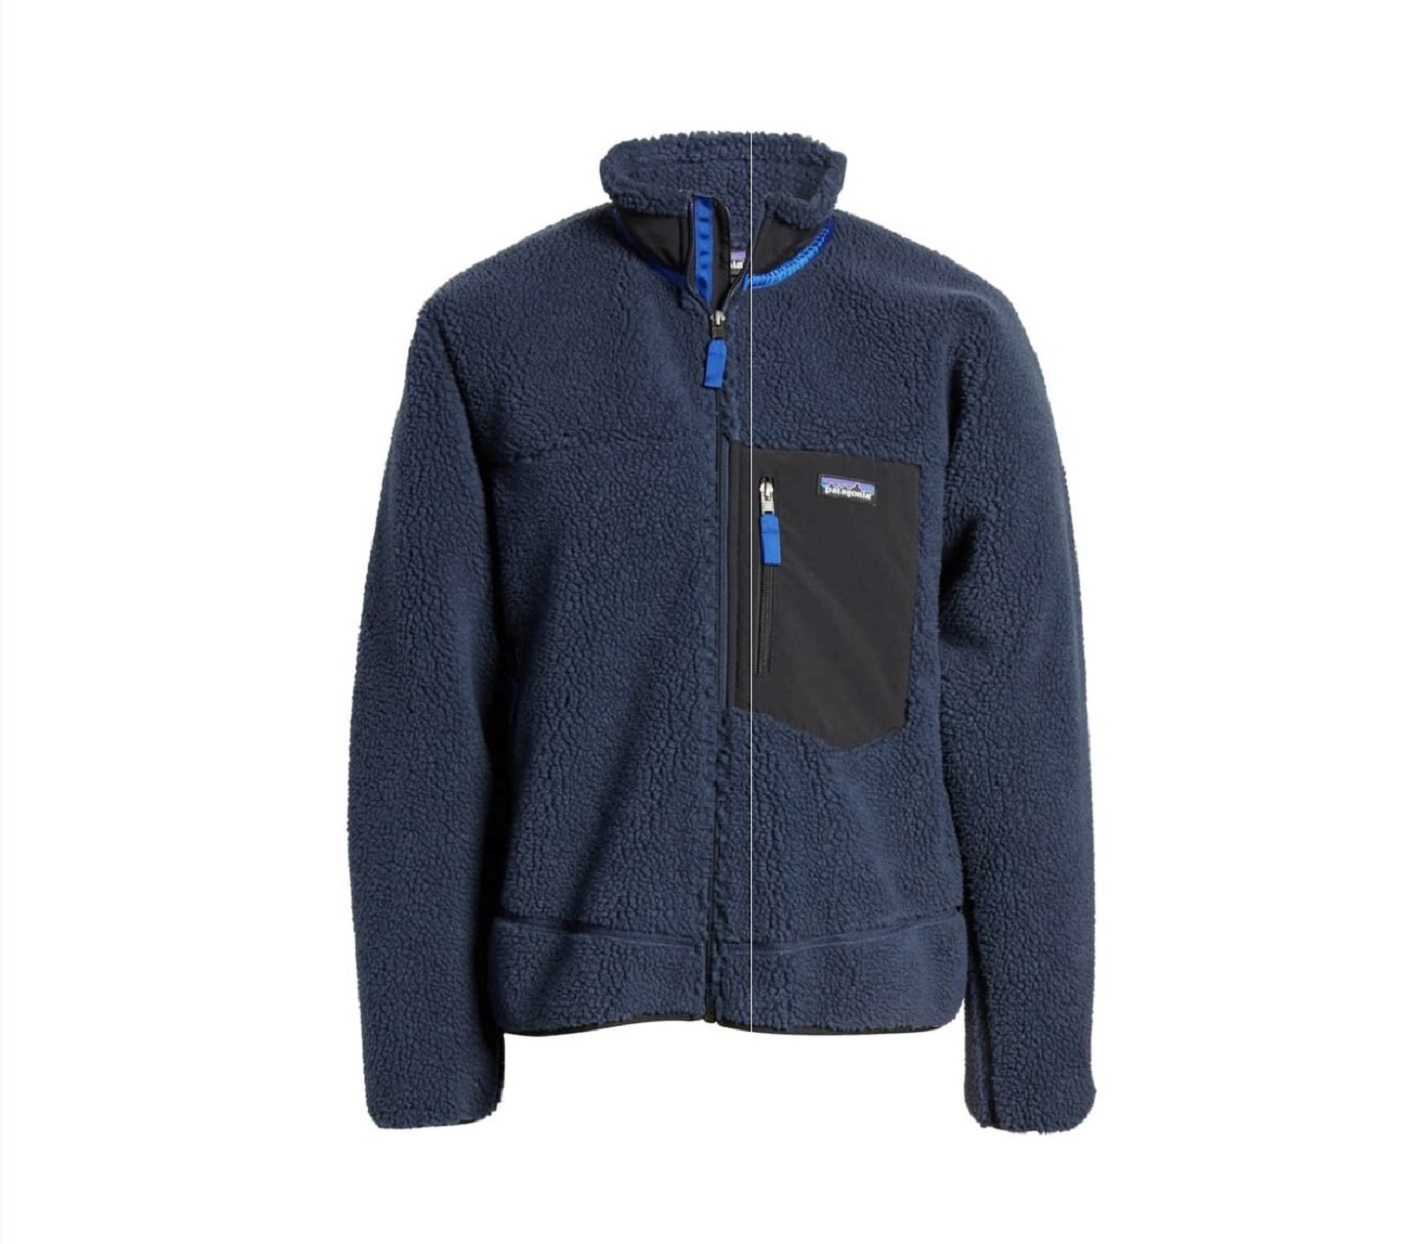 2019 holiday gift guide Patagonia Retro Fleece Jacket